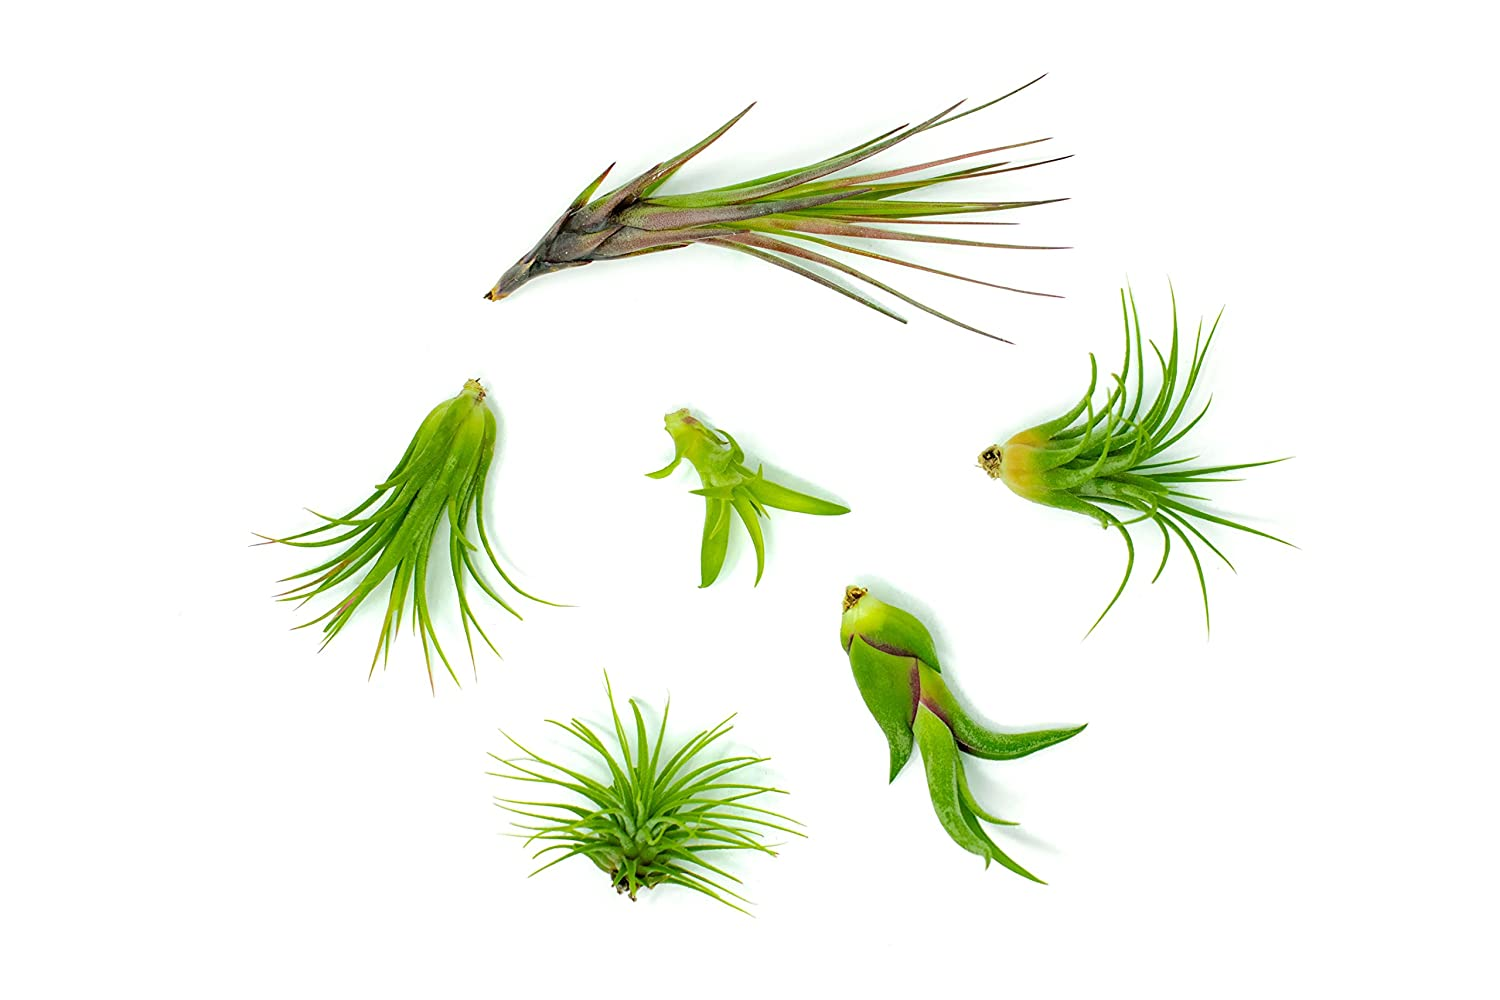 6 Air Plant Variety Pack - Small Tillandsia Terrarium Kit - Assorted Species of Live Tillandsia Tropical House Plants for Sale, 2 to 5 Inches Each - Air Plants for Indoor Home Decor: Grocery & Gourmet Food